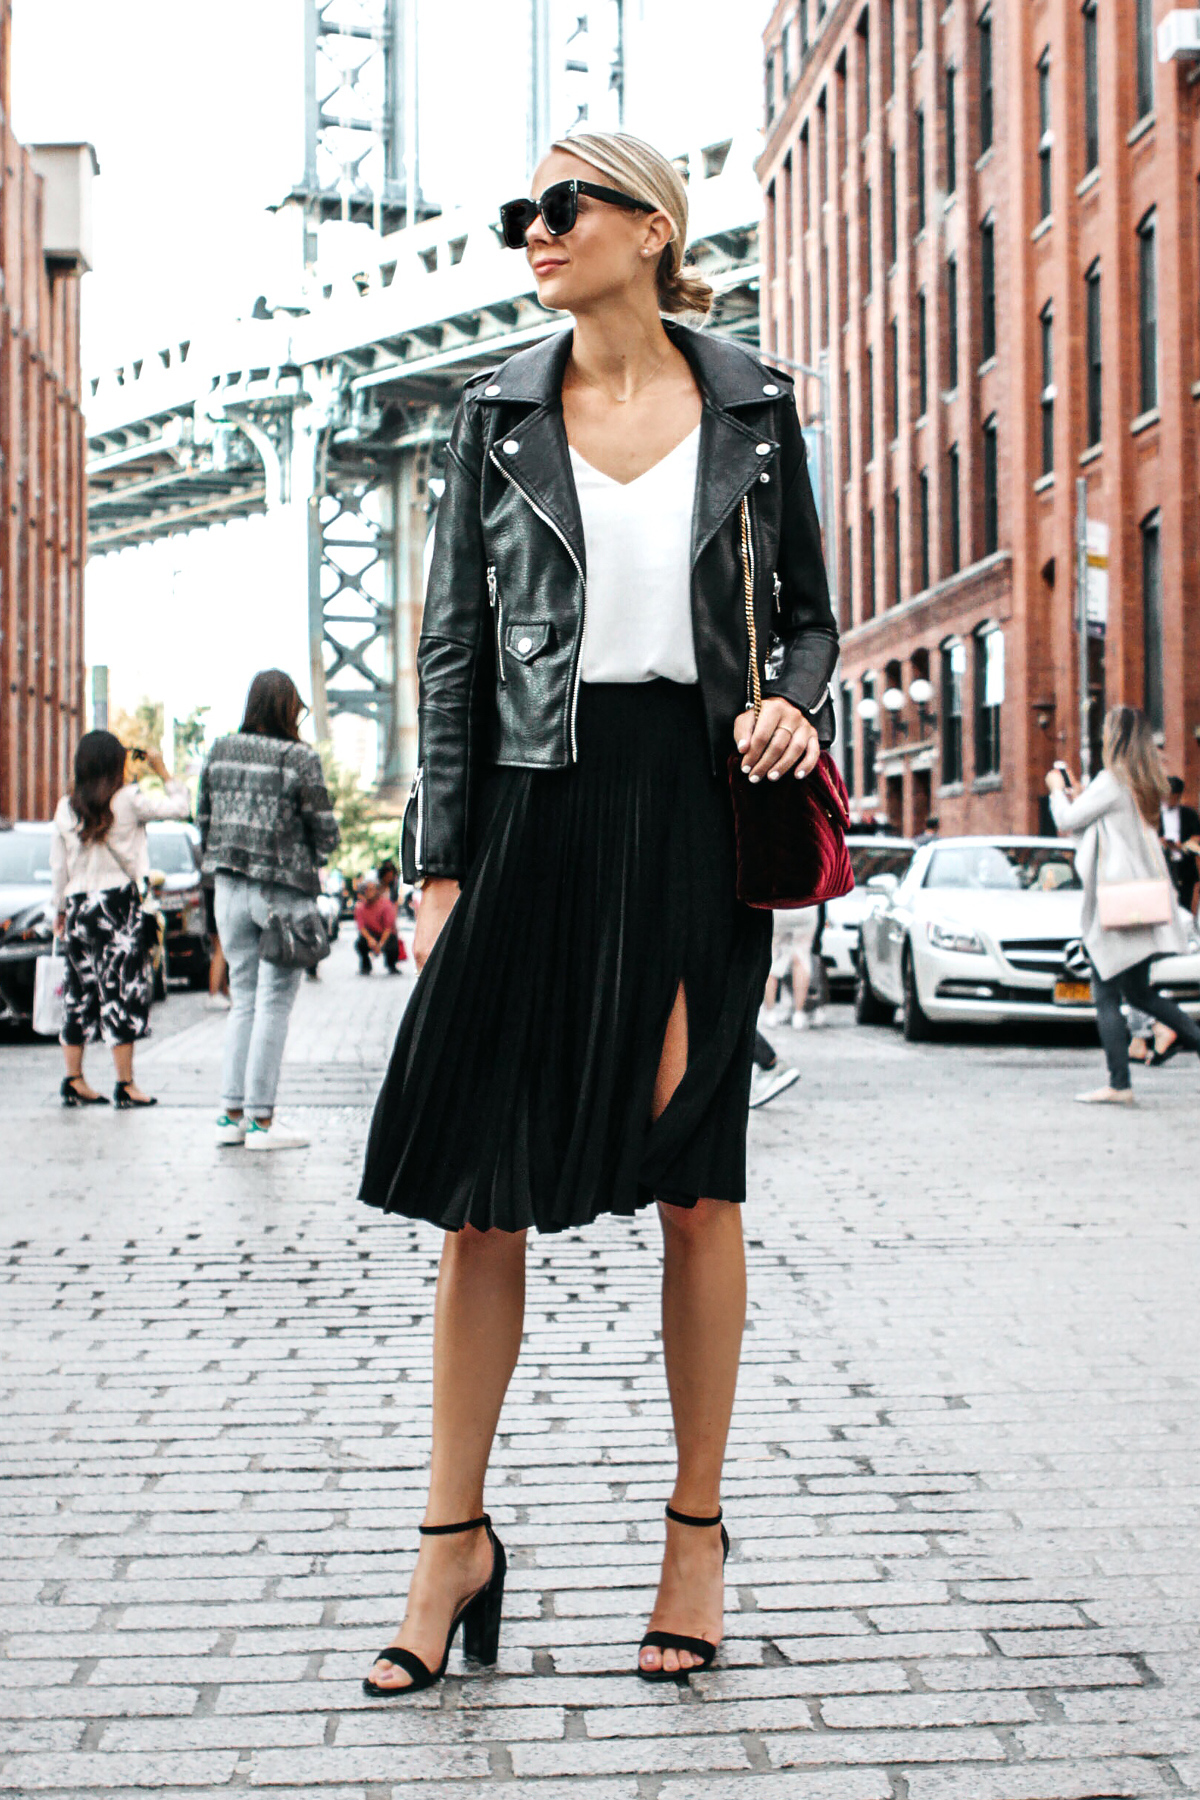 c23378c52750 Blonde Woman Wearing Black Leather Jacket Black Pleated Midi Skirt Saint  Laurent Burgundy Velvet Bag Black